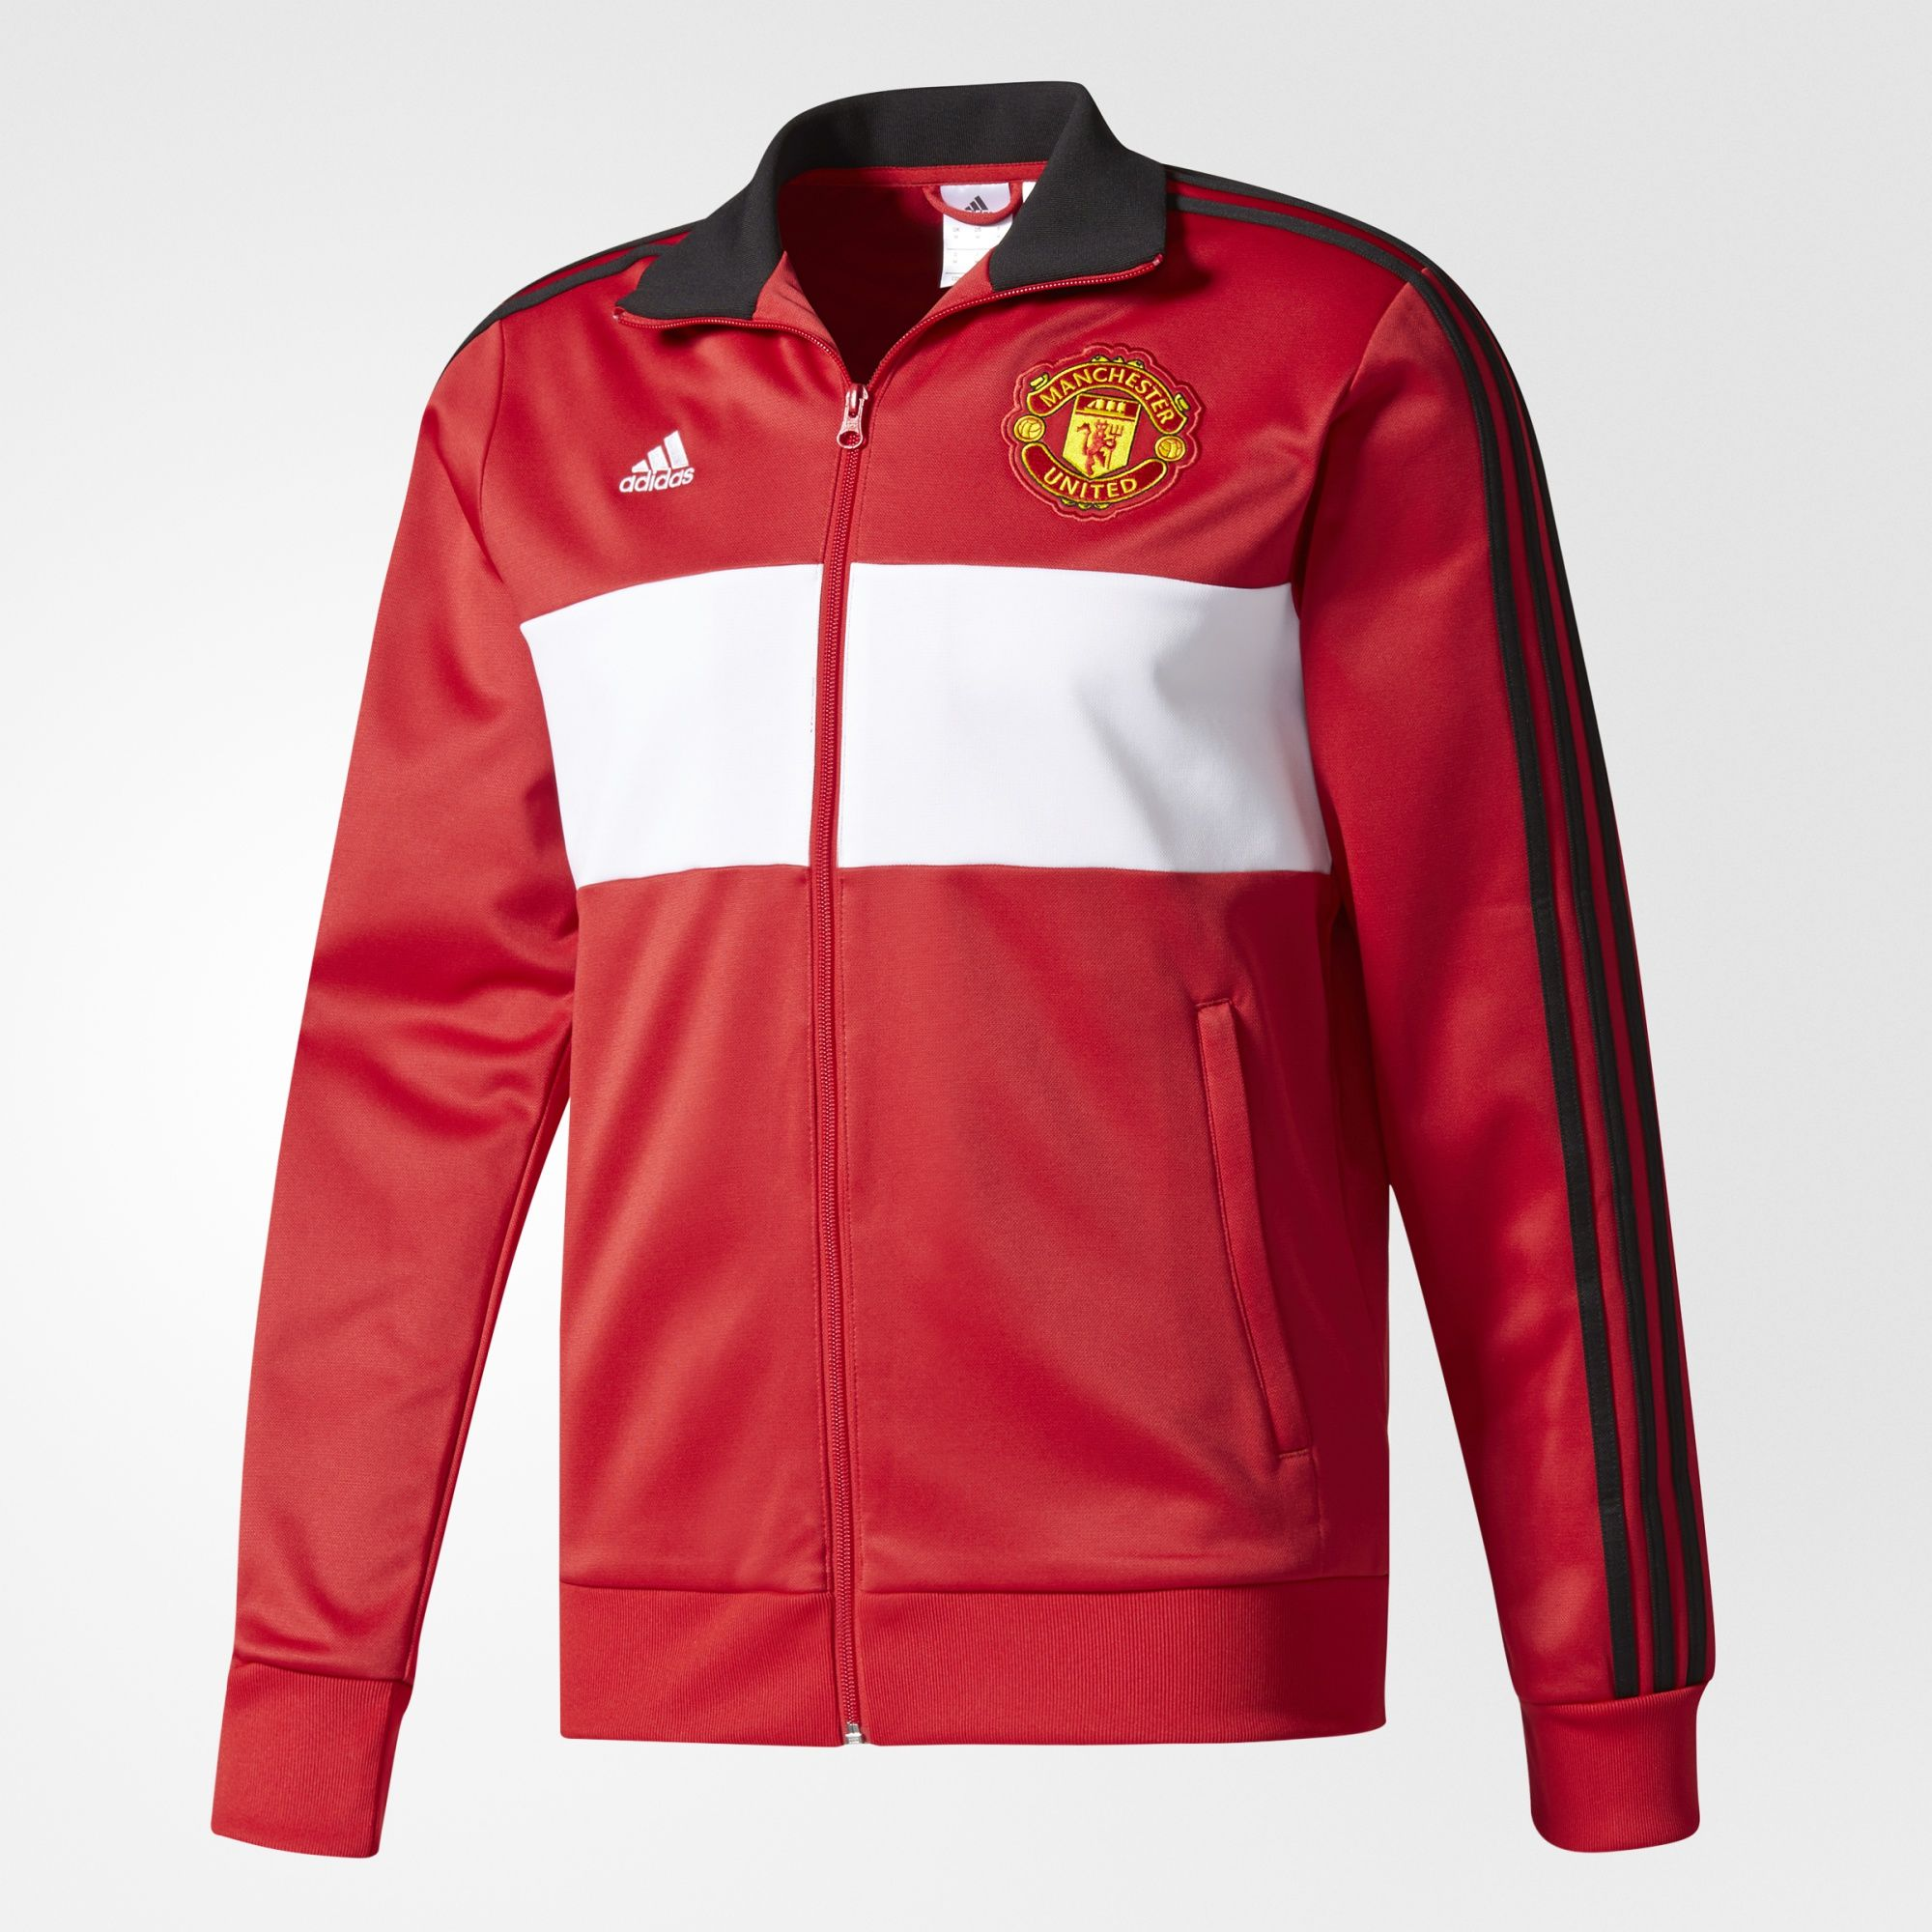 0ad7c30af23 Front zip pocketsFull zip with hoodRibbed hem and cuffsManchester United  embroidered crest on left chest3-Stripes on sleevesadidas Badge of Sport  woven on ...